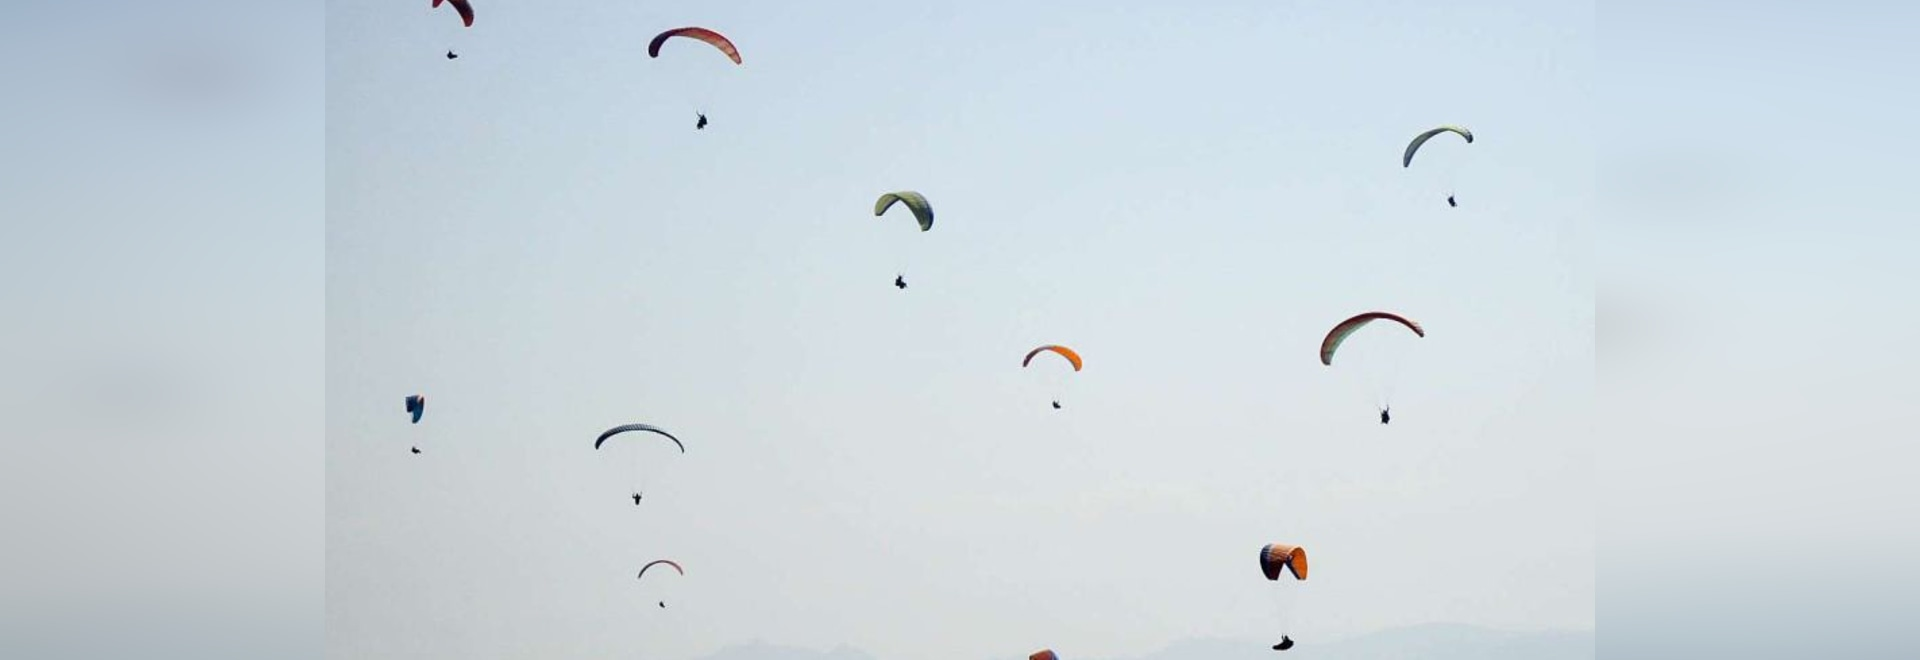 Karmaflights: Paragliding the Himalayas to raise money for earthquake-recovering Nepal